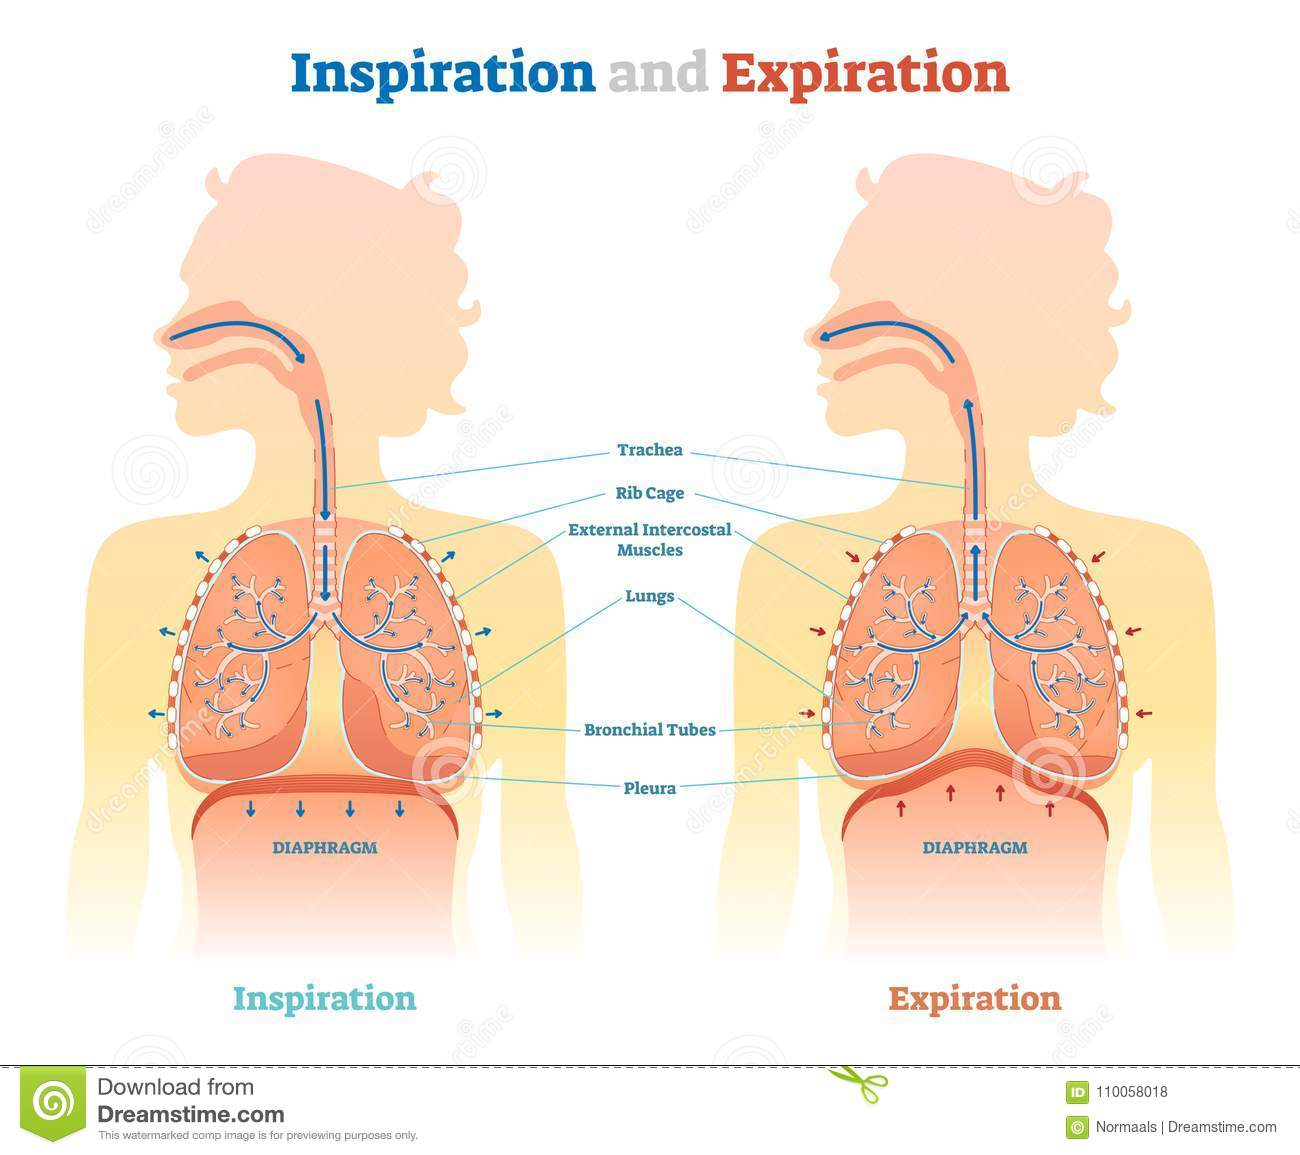 inspiration and expiration anatomical vector illustration diagram,  educational medical scheme with lungs, diaphragm, rib cage and trachea